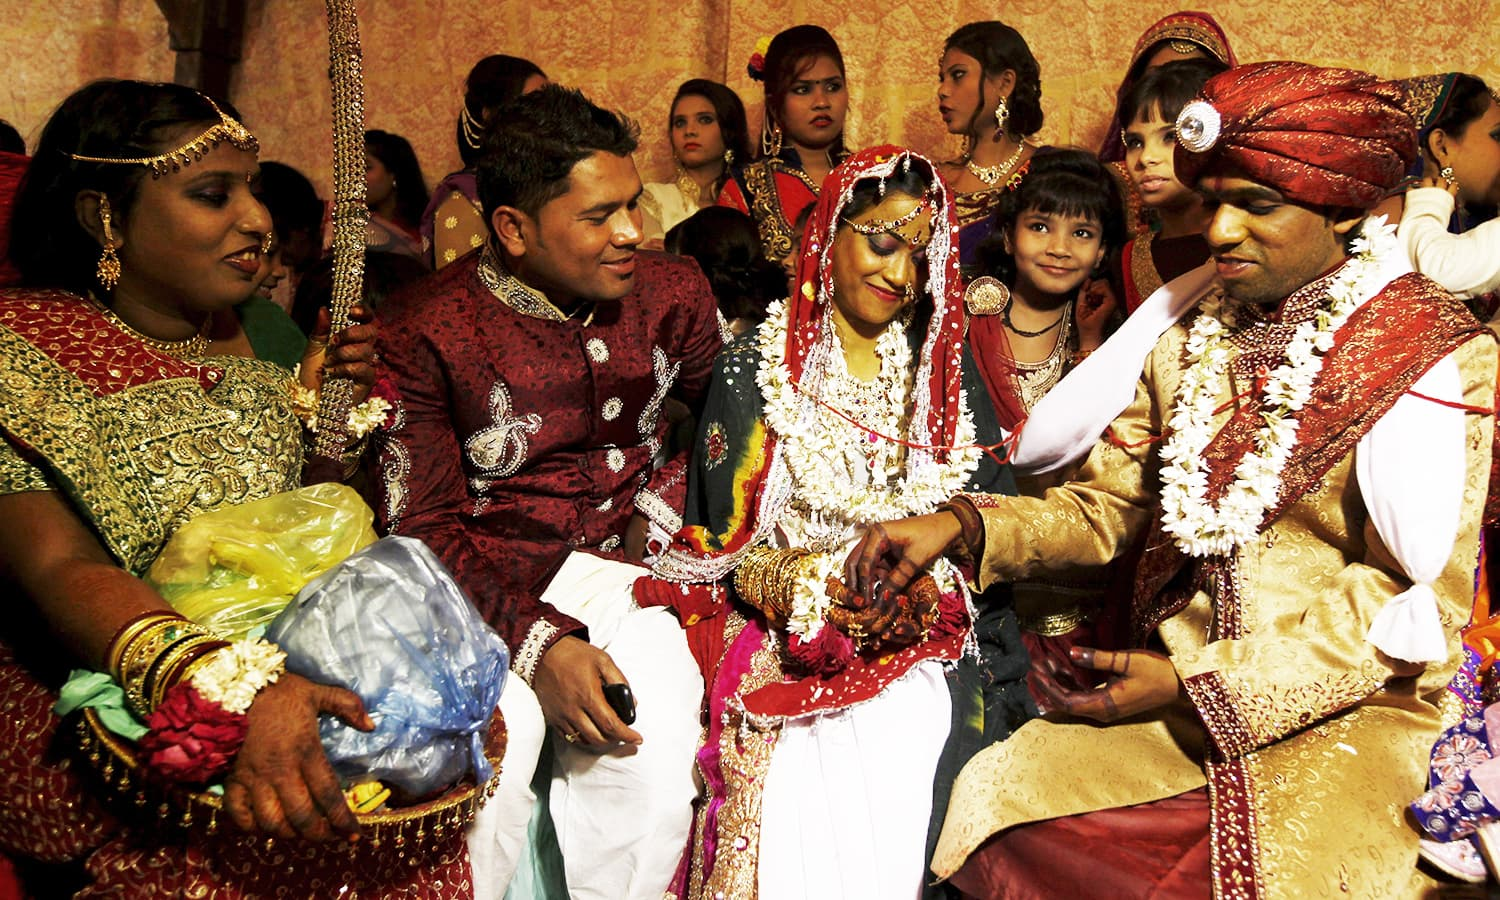 A bride and groom couple go through a ritual during a marriage ceremony. ─ Reuters